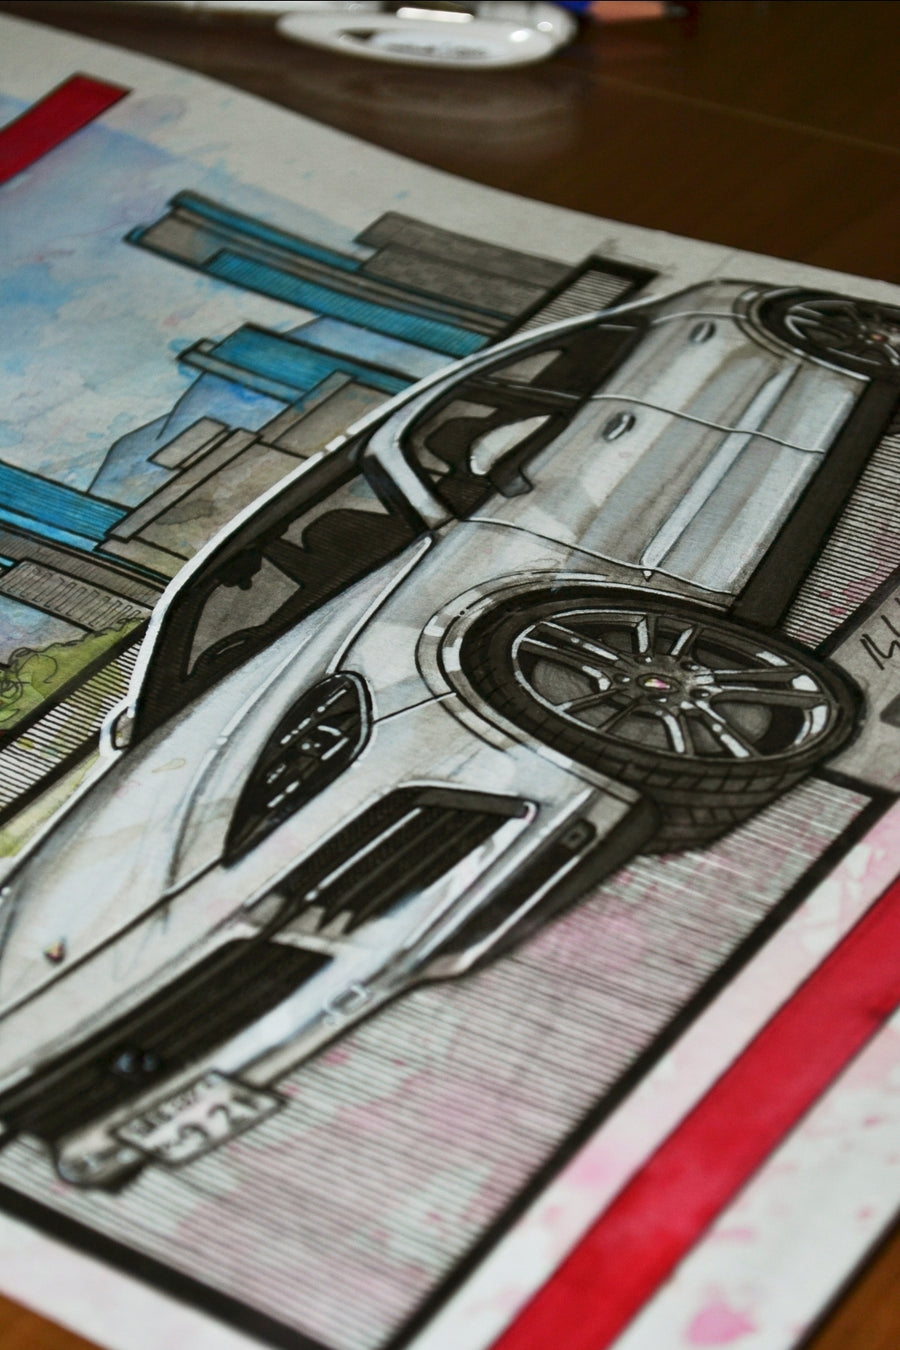 Inspiration from @yumi_s_cayennes 's Cayenne S Coupe / Handmade Artwork